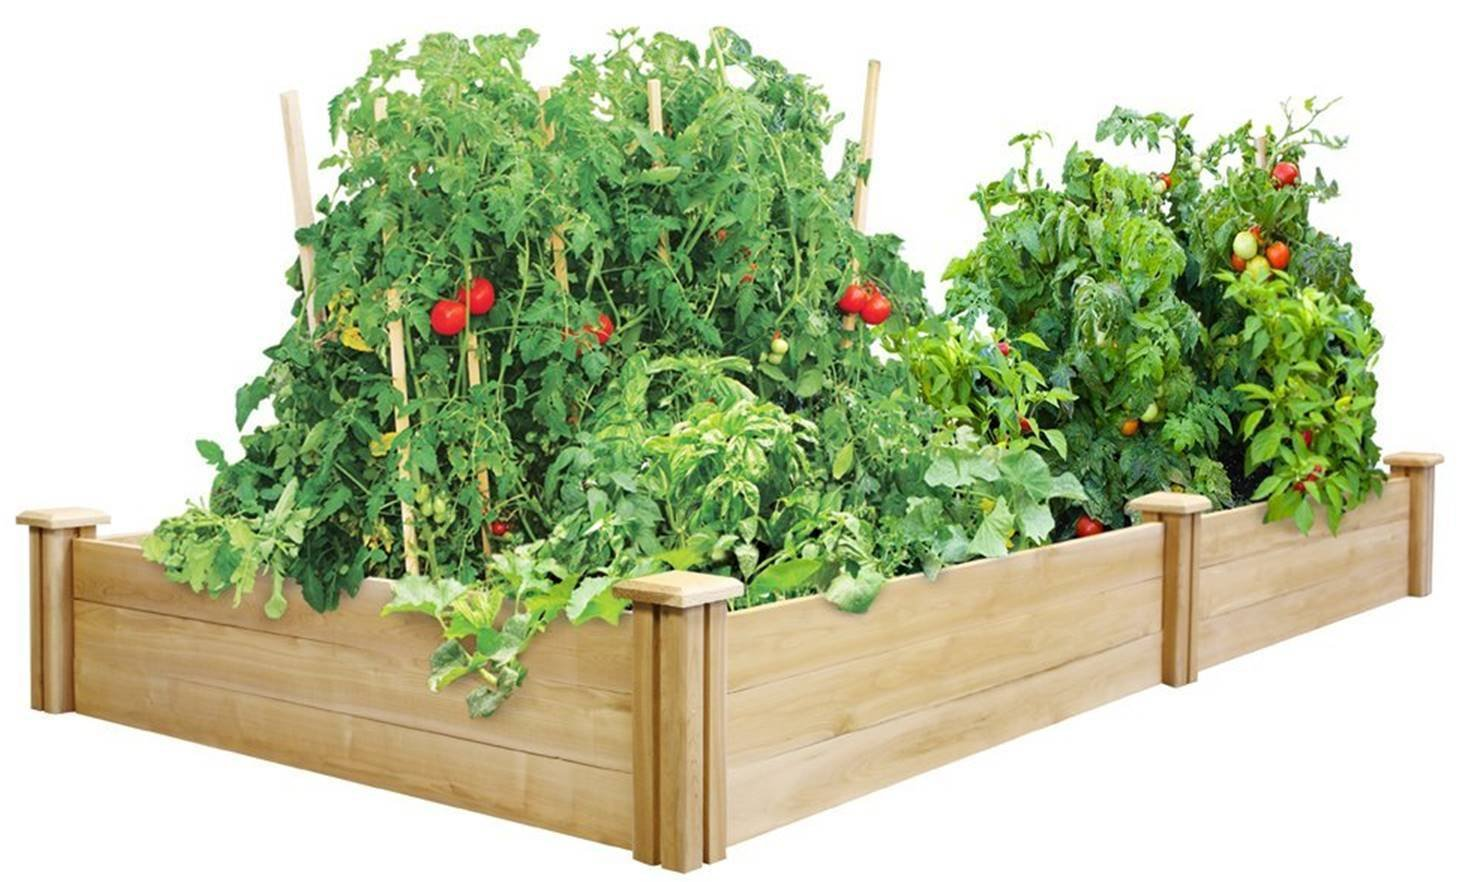 Happy Planter Wood Raised Garden Bed, 4' x 8' x 10.5'' by Happy Planter